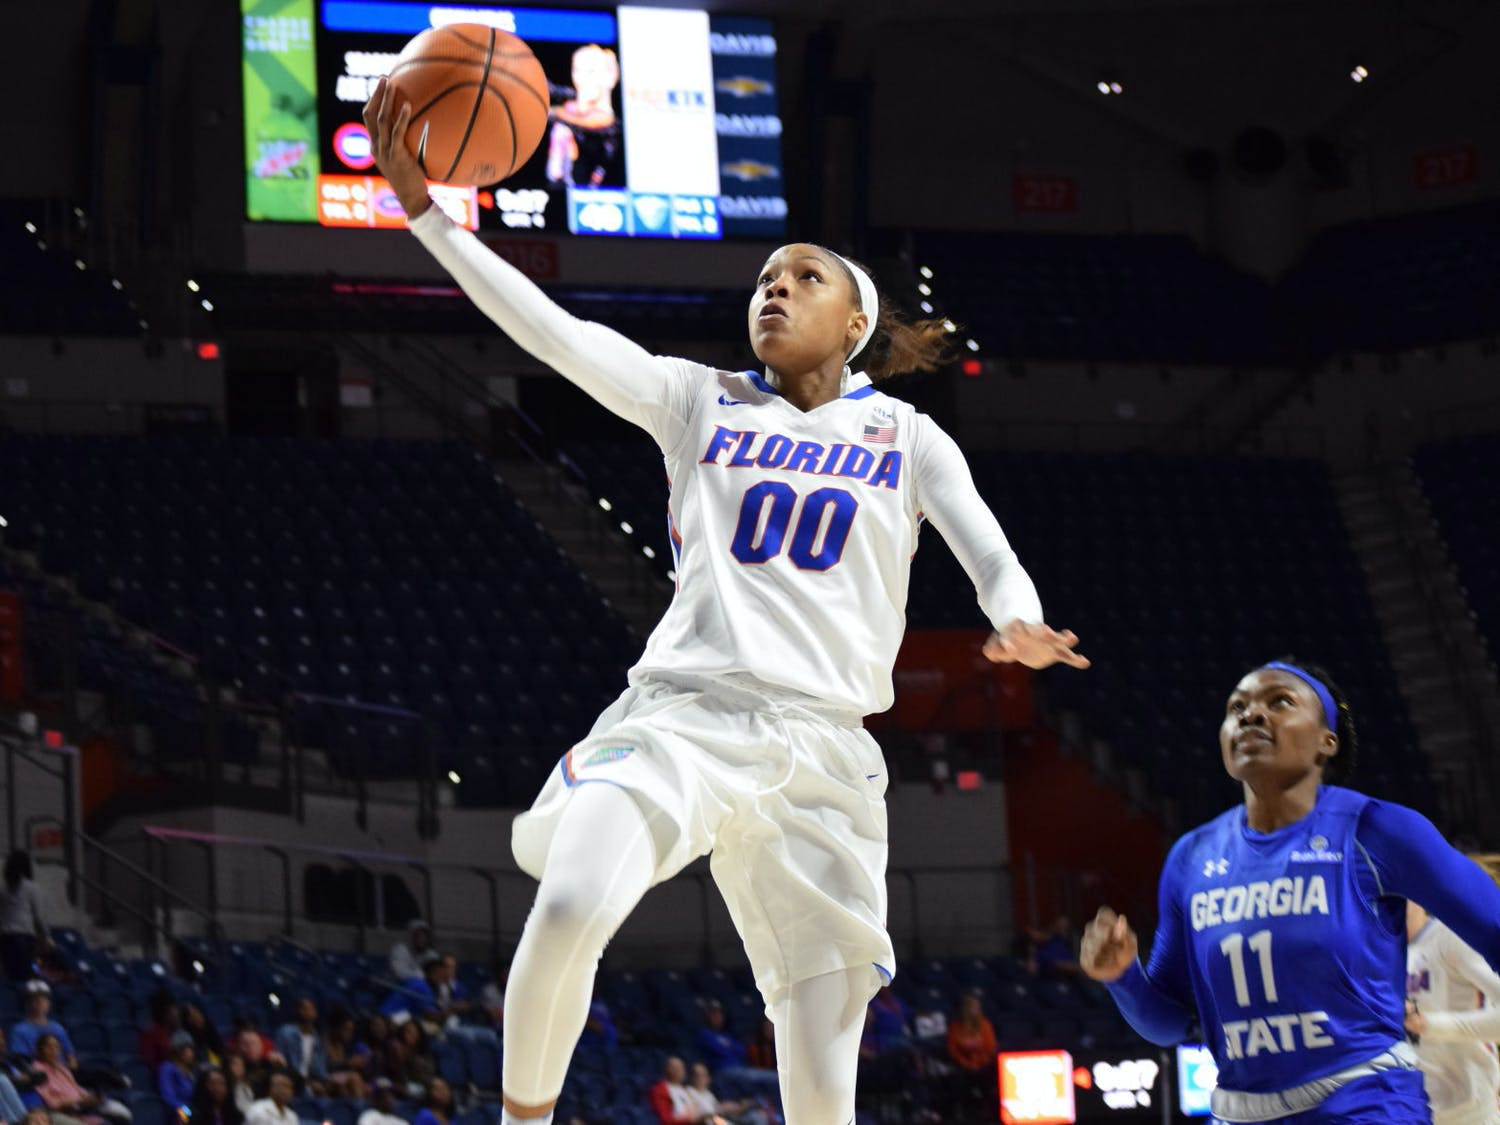 Florida guard Delicia Washington's jumper gave UF a two-point lead with just 15 seconds left, and the Gators snapped a five-game losing streak with a 57-55 win over Alabama.